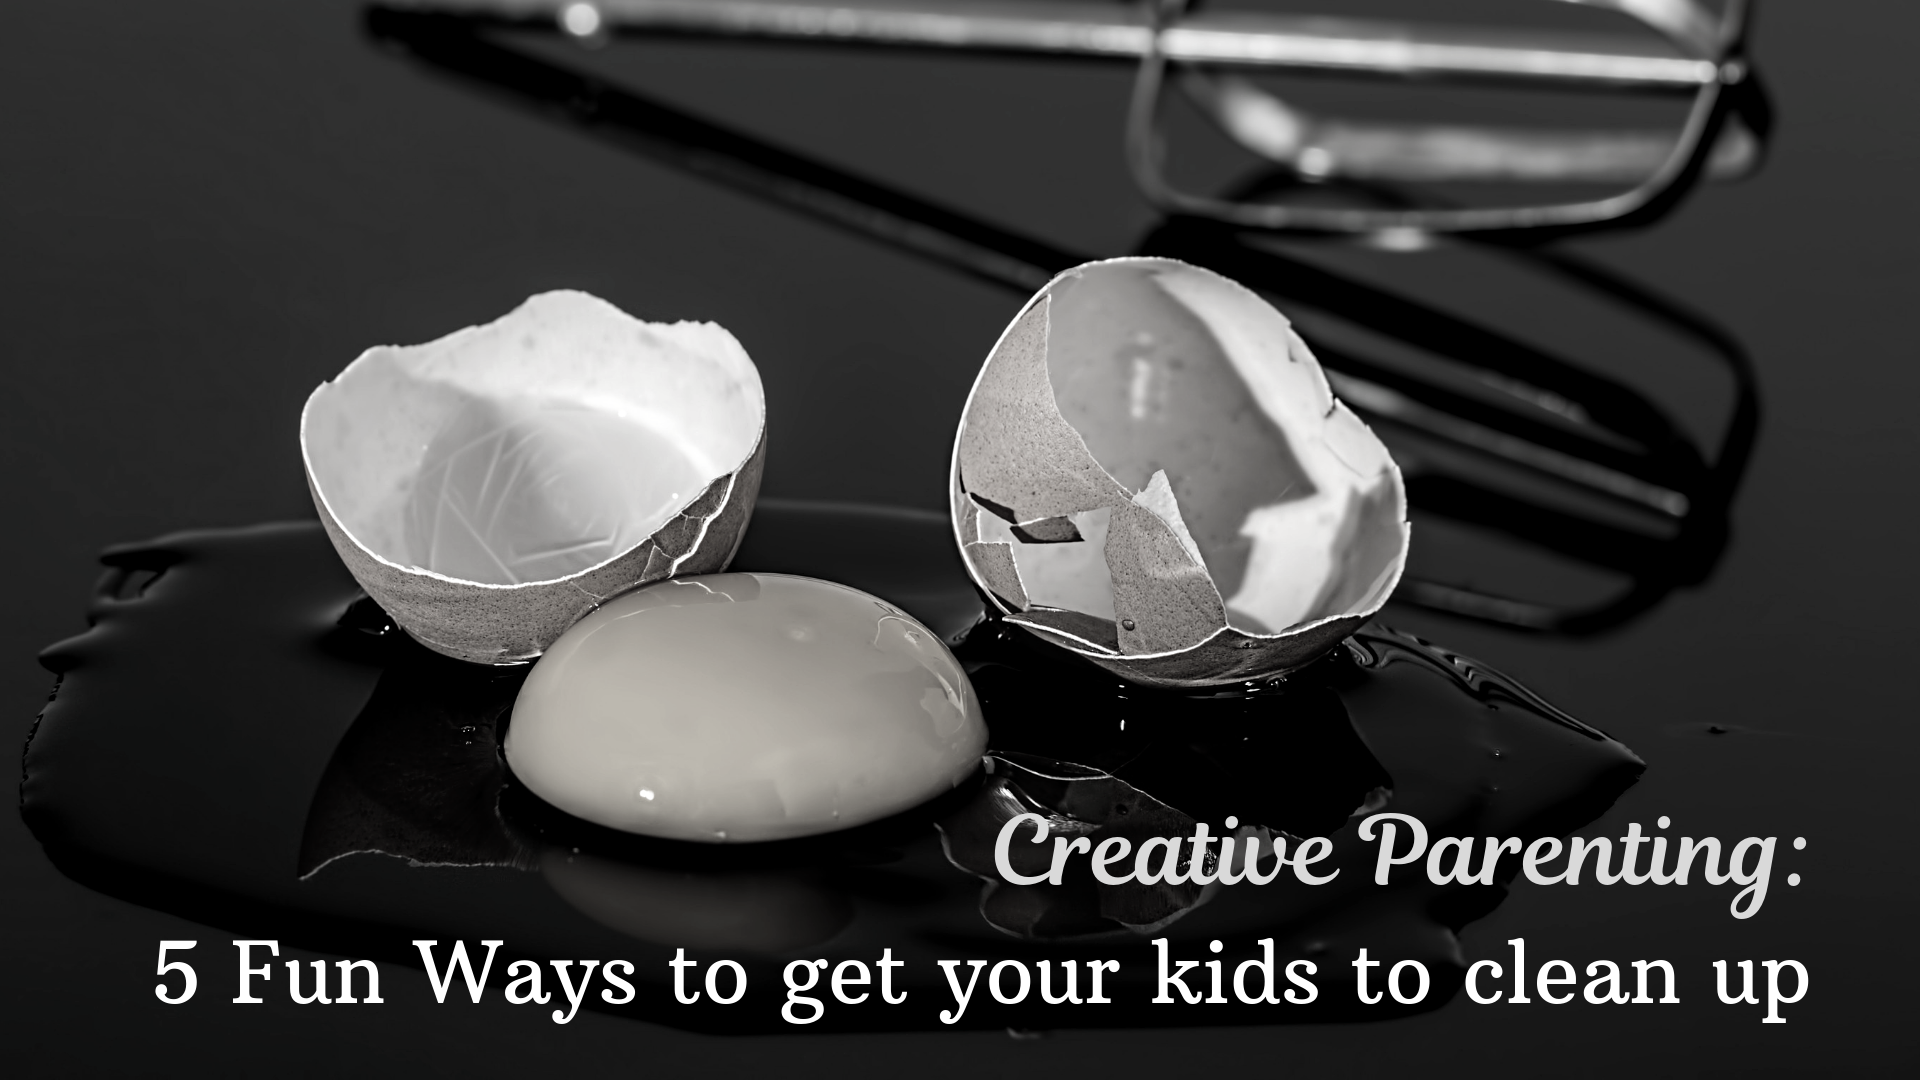 5 Fun Ways to Get Your Kids to Clean Up